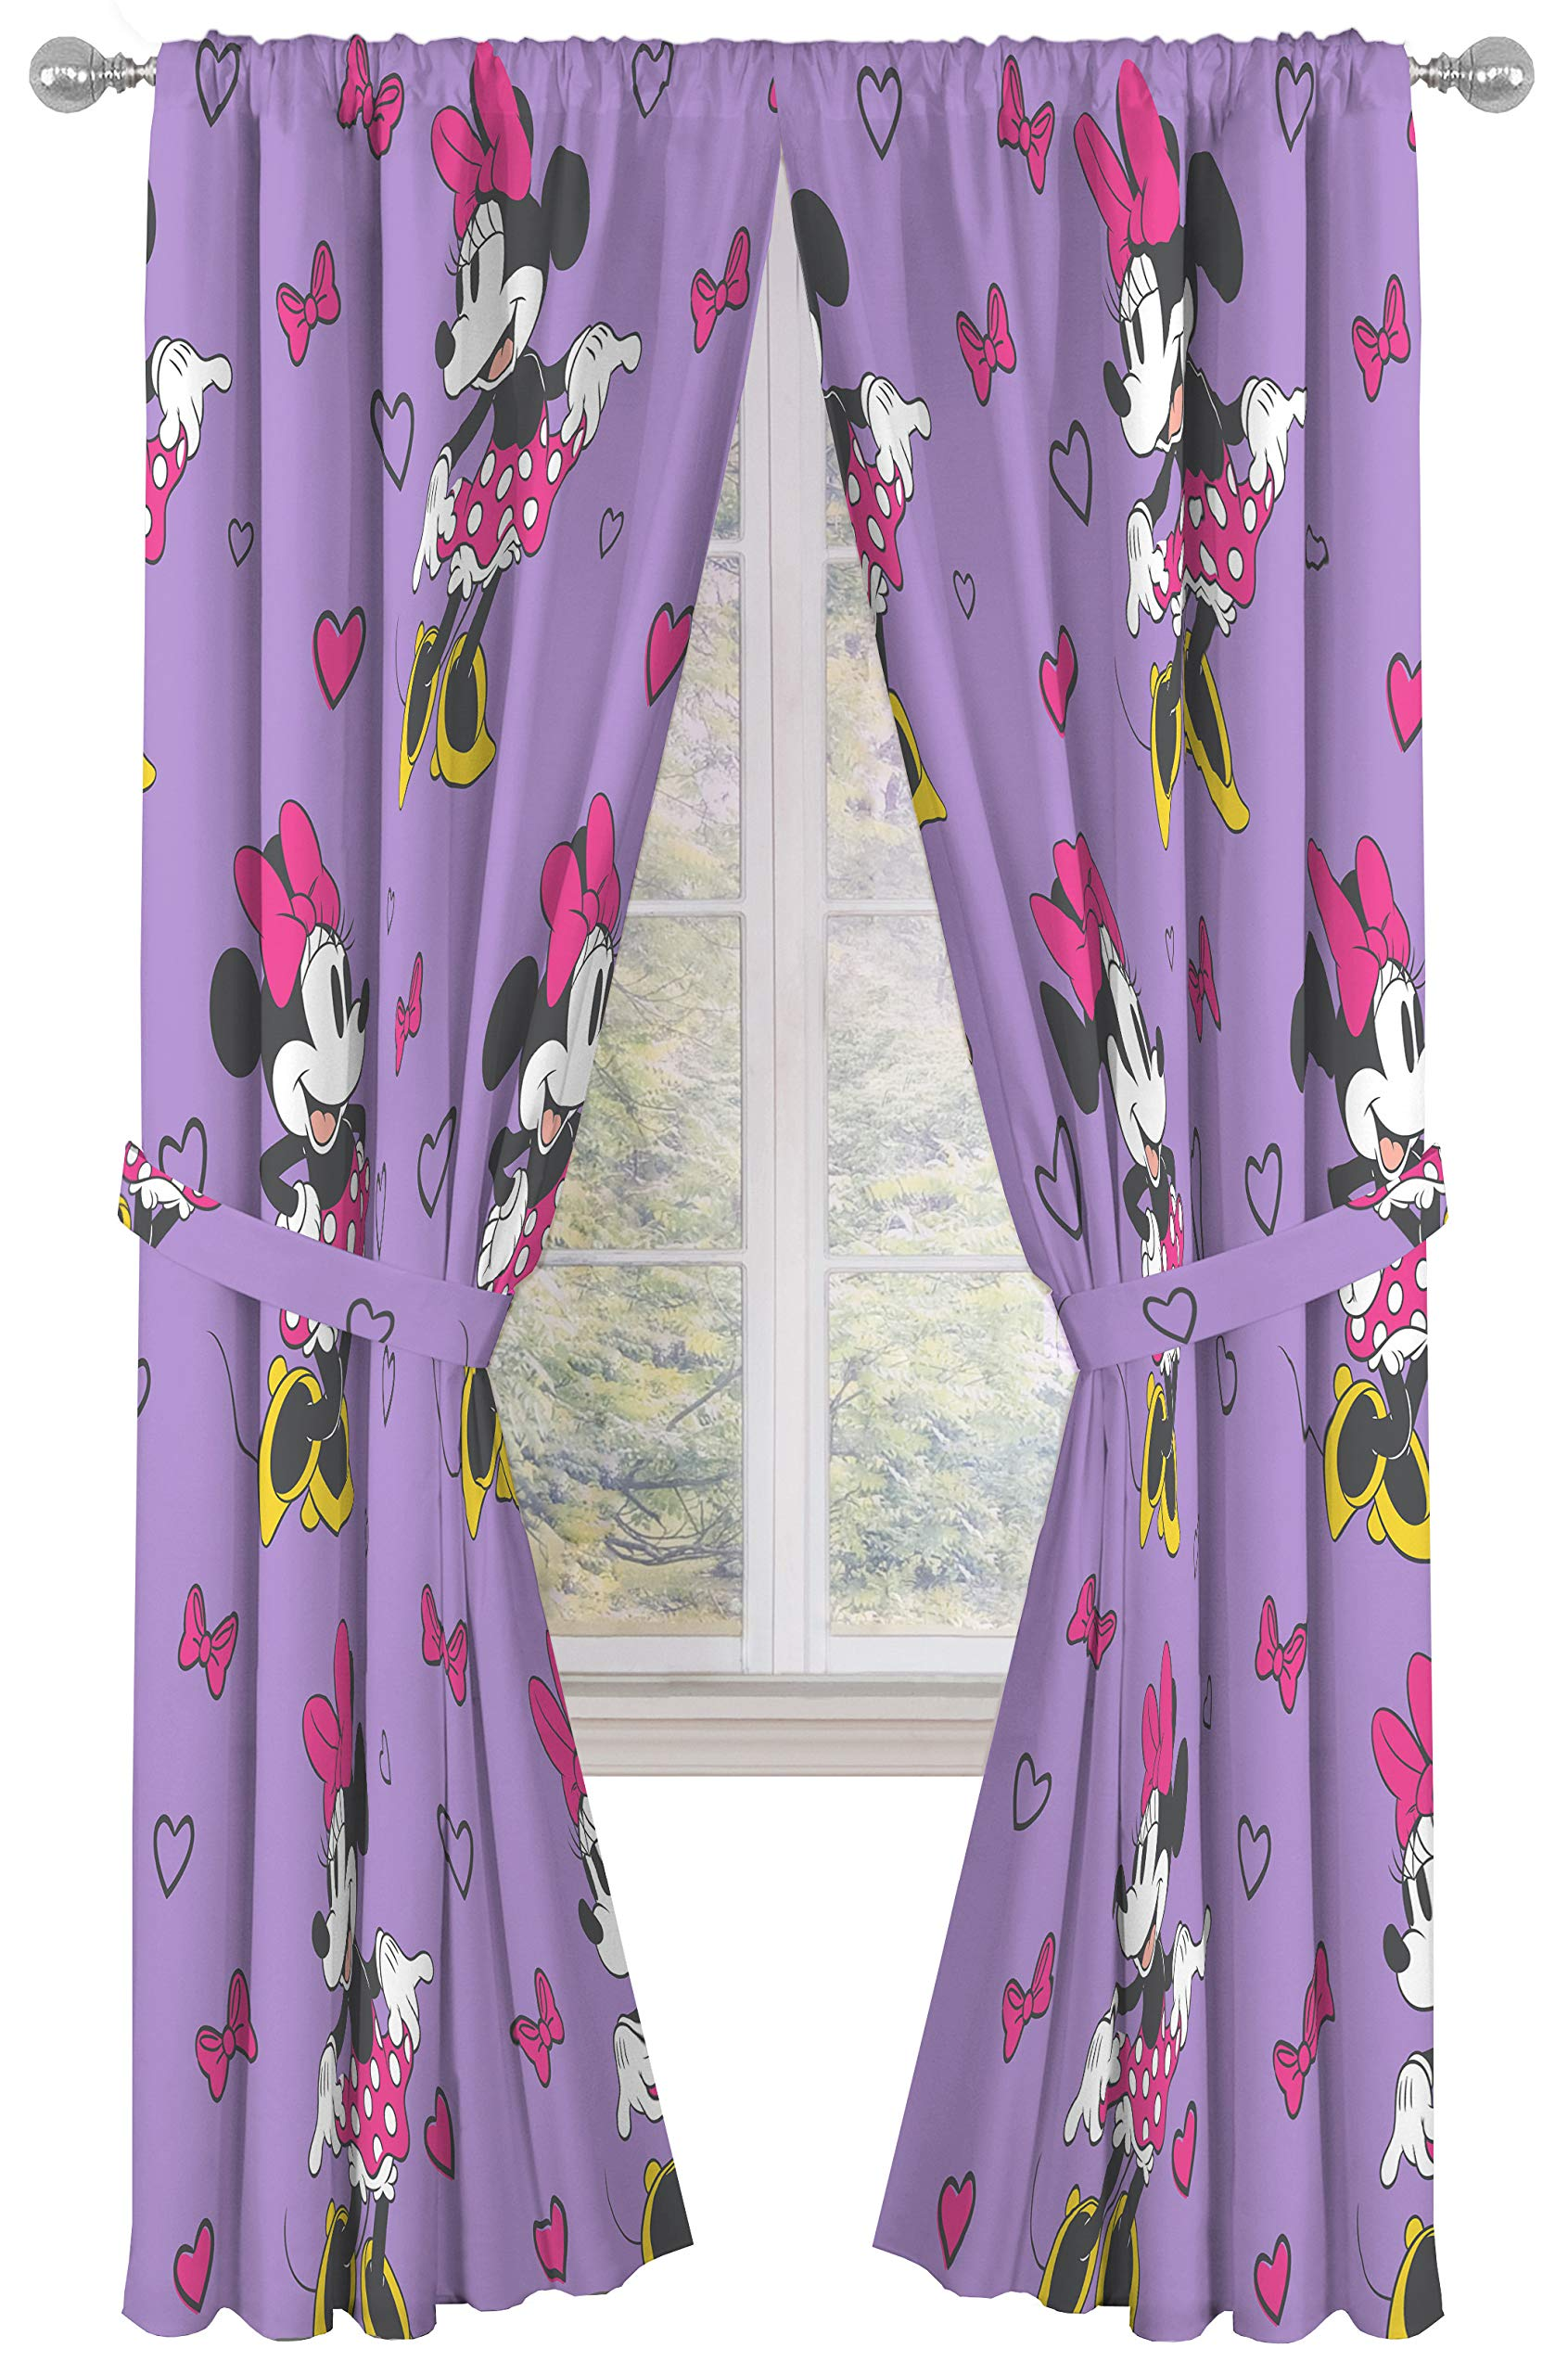 Jay Franco Disney Minnie Mouse Purple Love 84'' inch Drapes 4 Piece Set - Beautiful Room Décor & Easy Set up - Window Curtains Include 2 Panels & 2 Tiebacks (Official Disney Product)